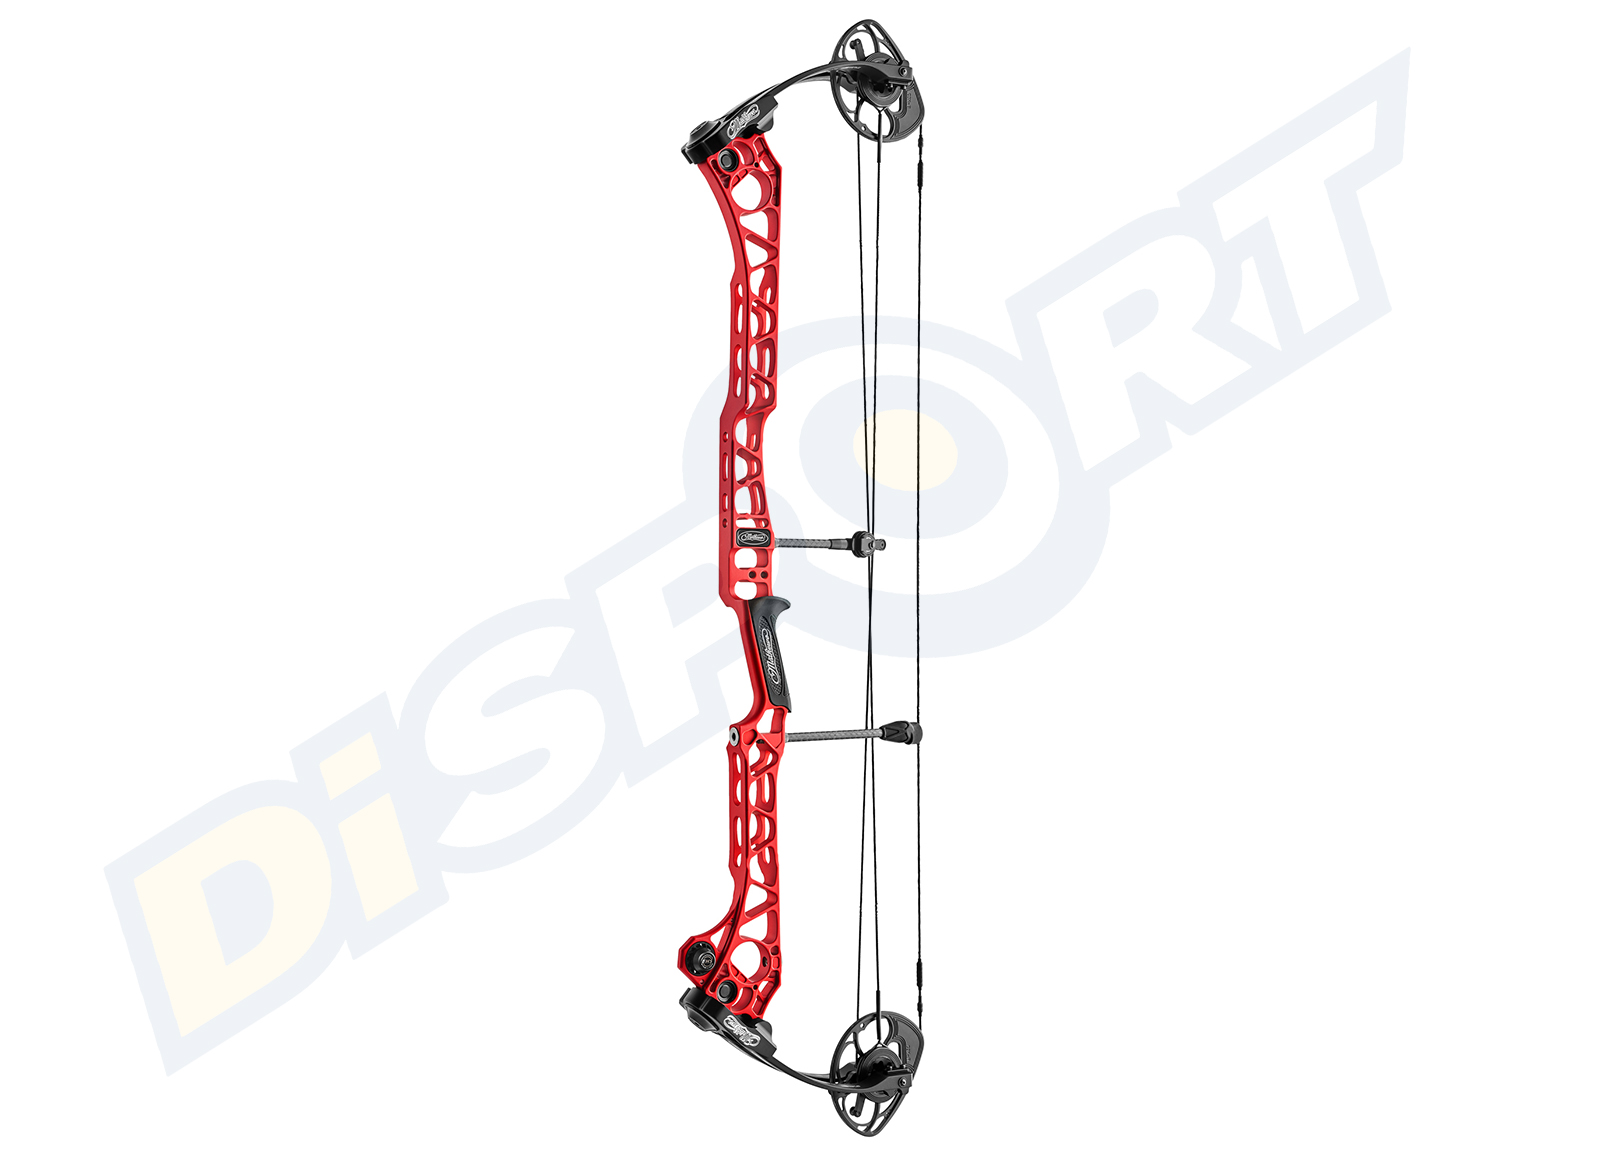 MATHEWS COMPOUND TRX 40 2020